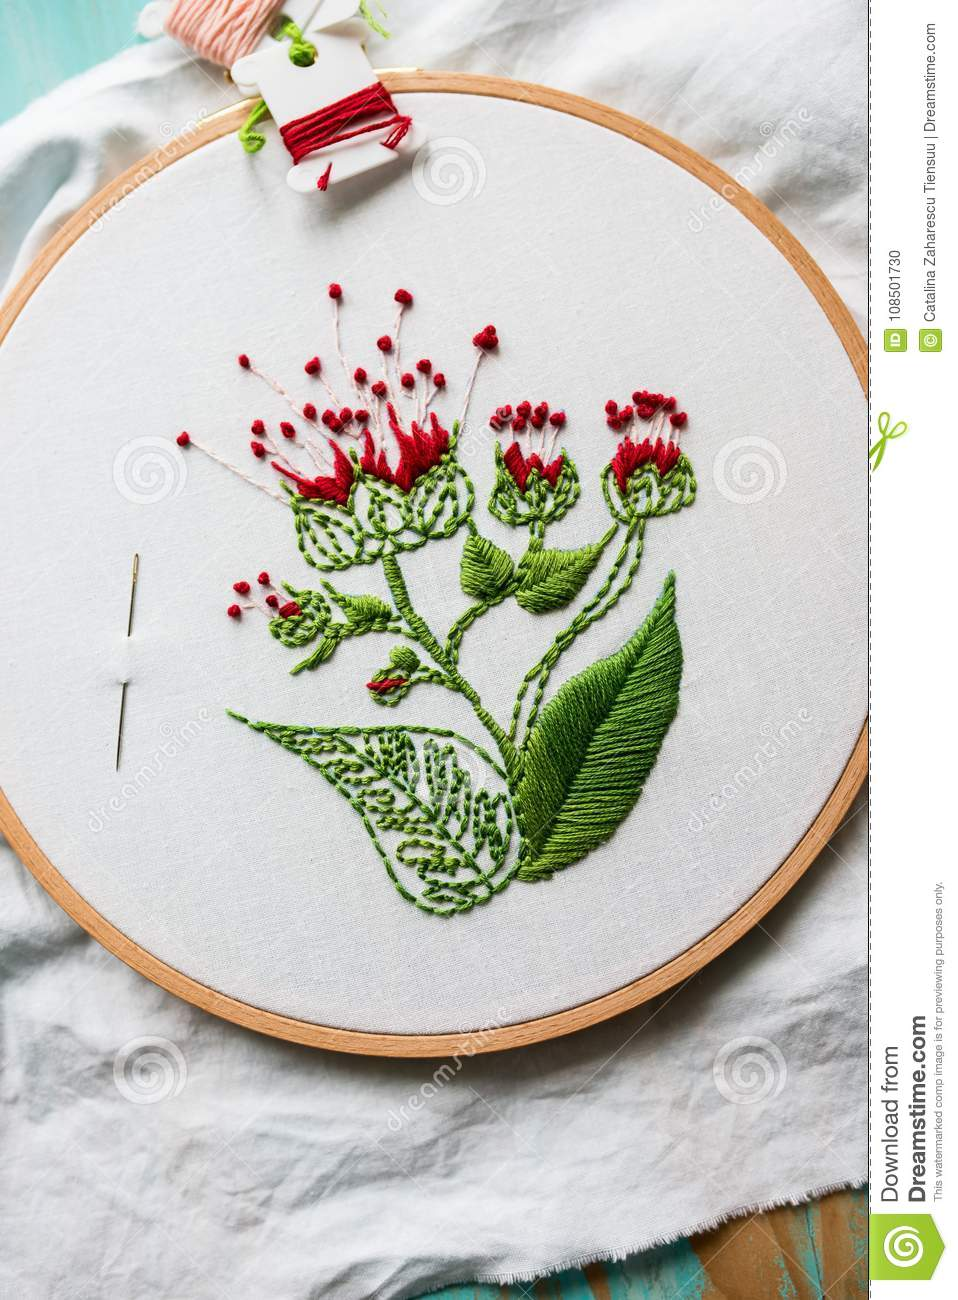 Hoop Modern Embroidery With Botanical Motifs On A Wooden Background